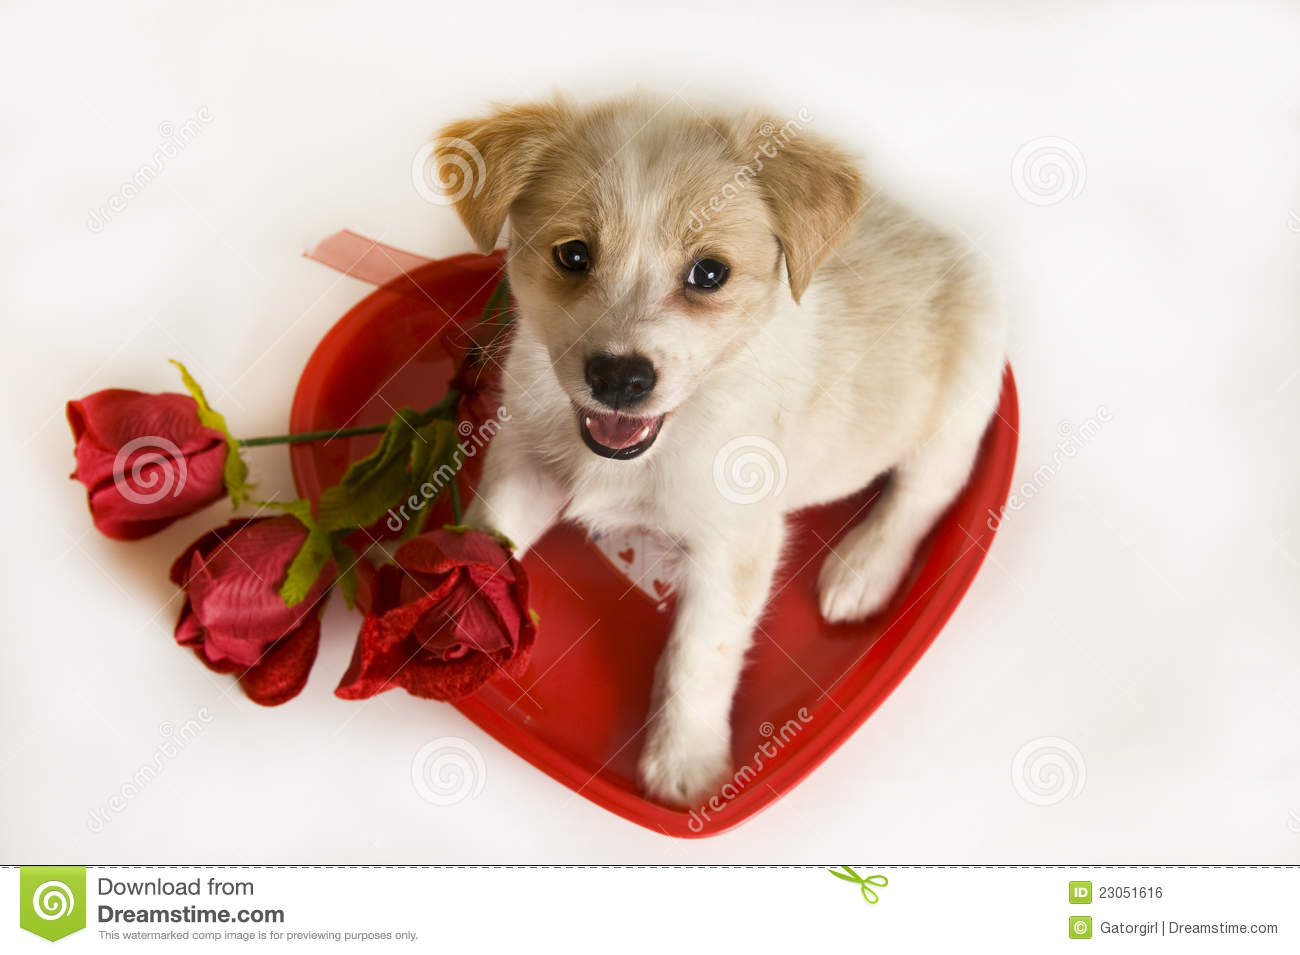 Großartig Valentine S Day Puppy With Heart And Roses